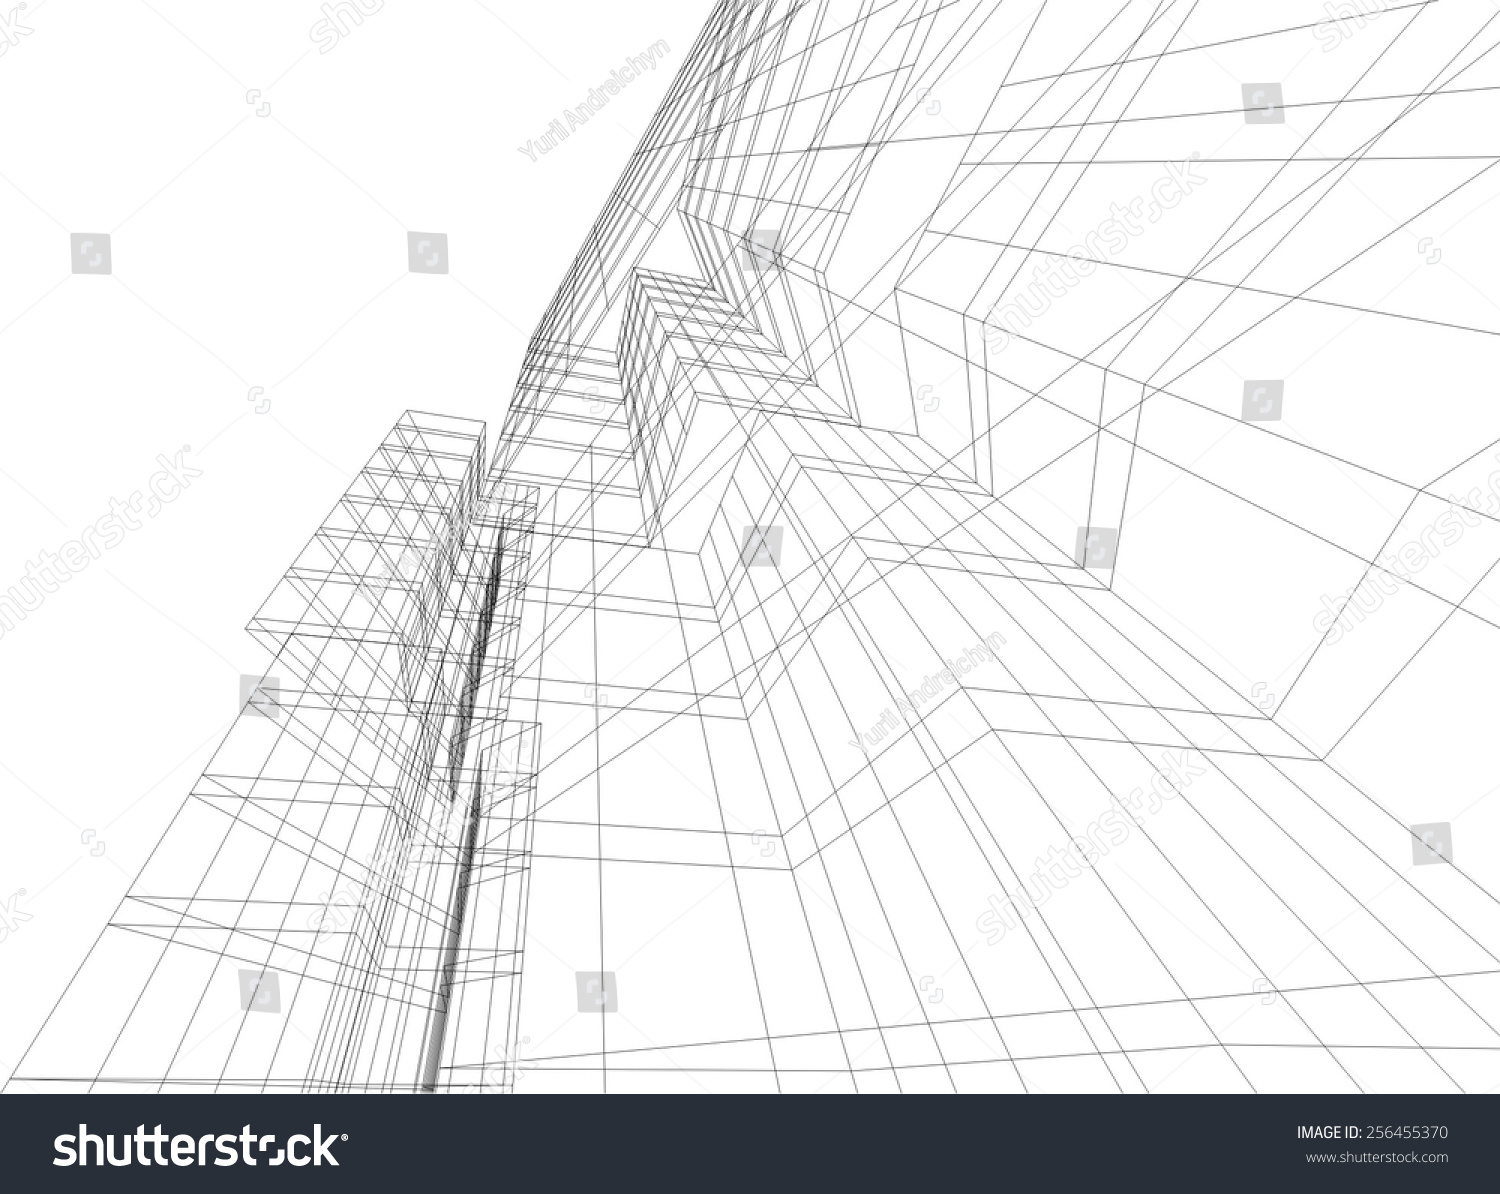 Modern Architectural Drawing Architecture Background Skyscraper Building